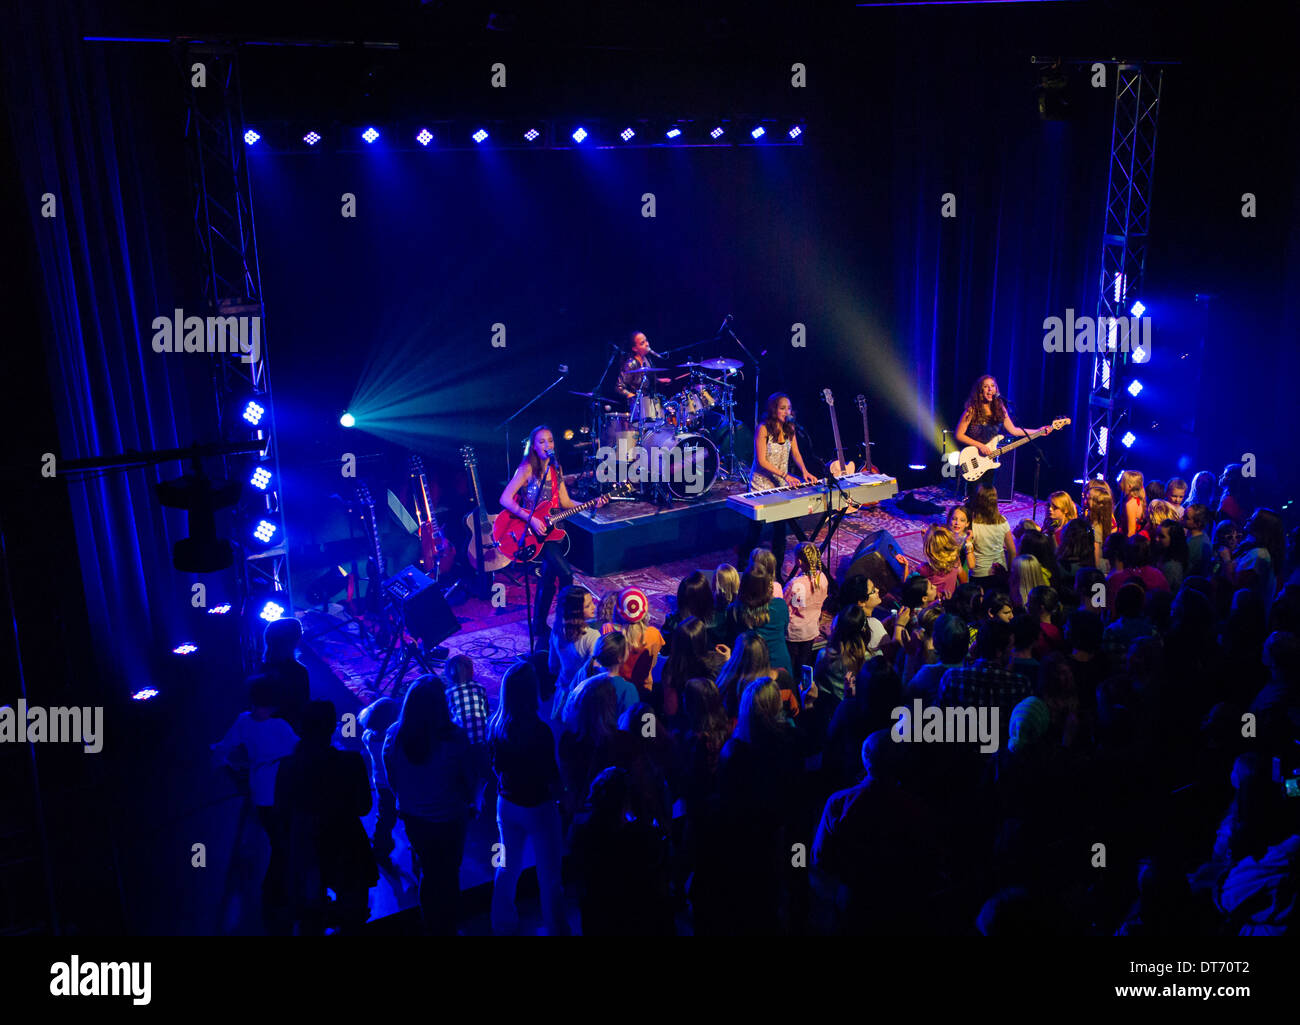 The Red Bandana, a music band of four young girls; play for a music video, SteamPlant Event Center, Salida, Colorado. - Stock Image